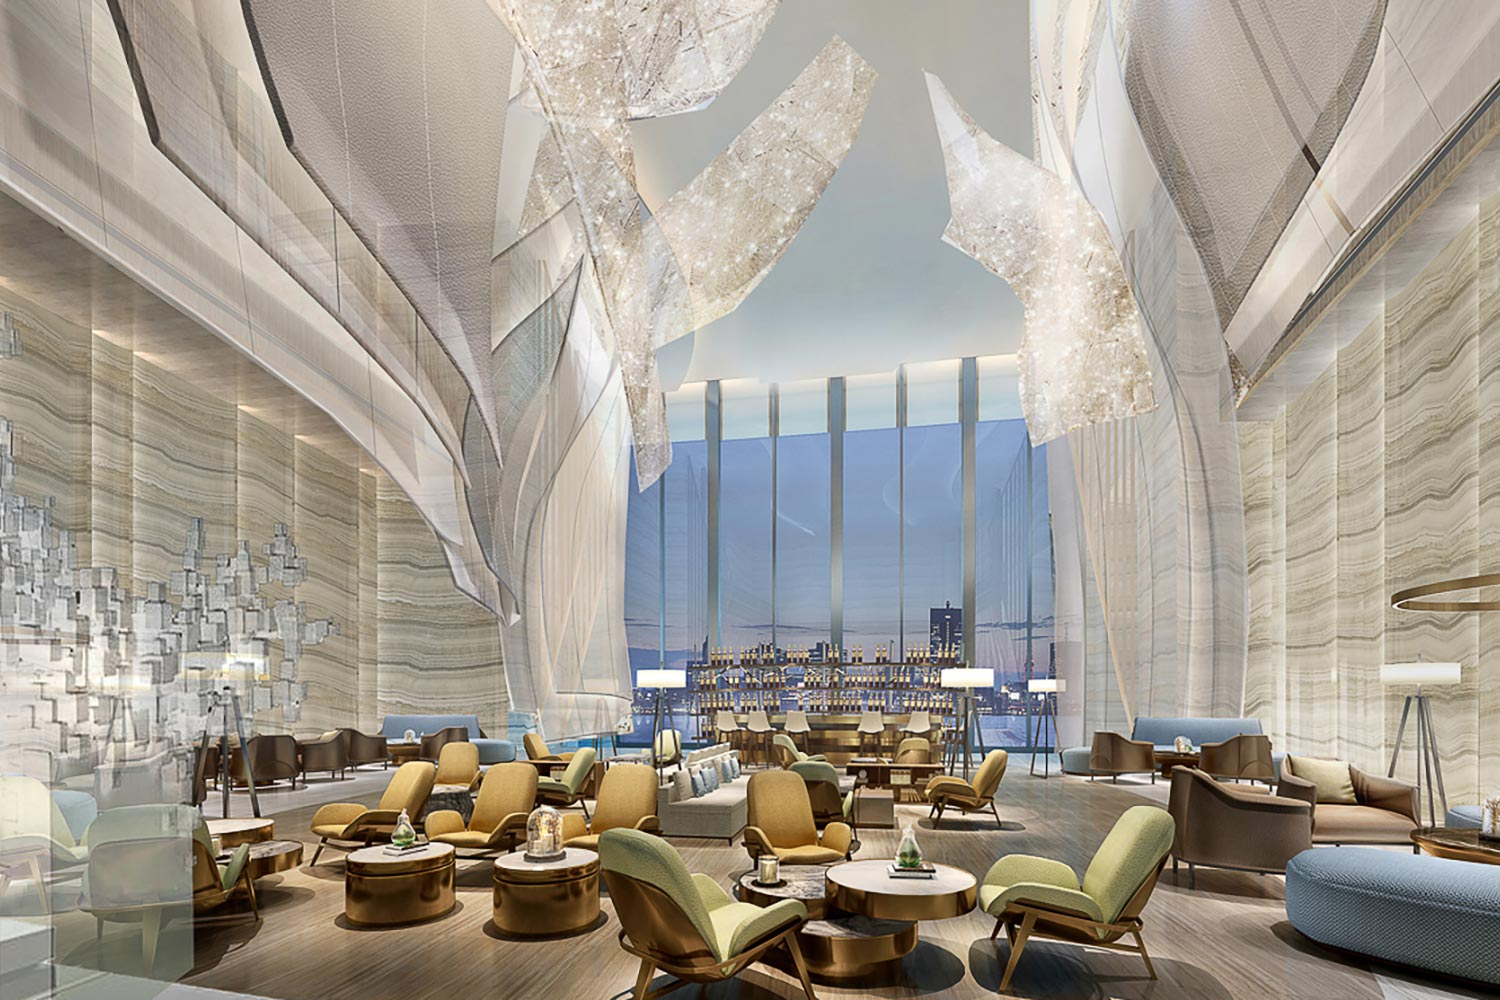 The Hilton Quanzhou Riverside in China. Hilton is experiencing its highest growth rates in the Asia-Pacific region. (Photo courtesy of Hilton)